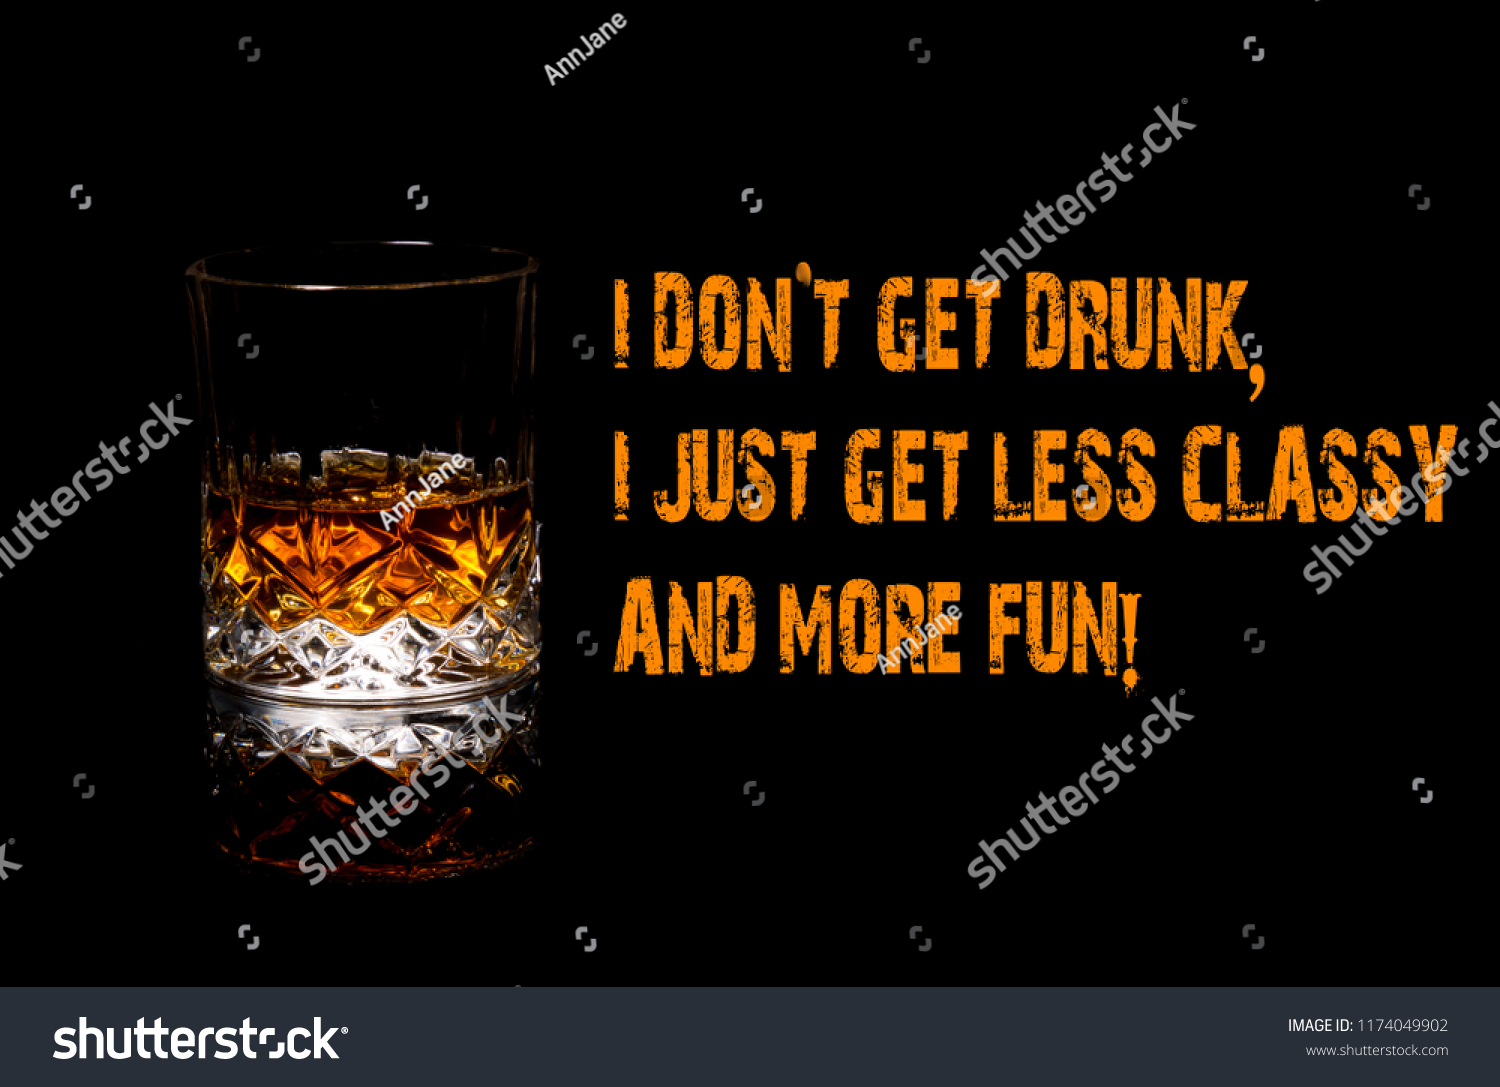 Whiskey funny meme i dont get drunk i just get more fun